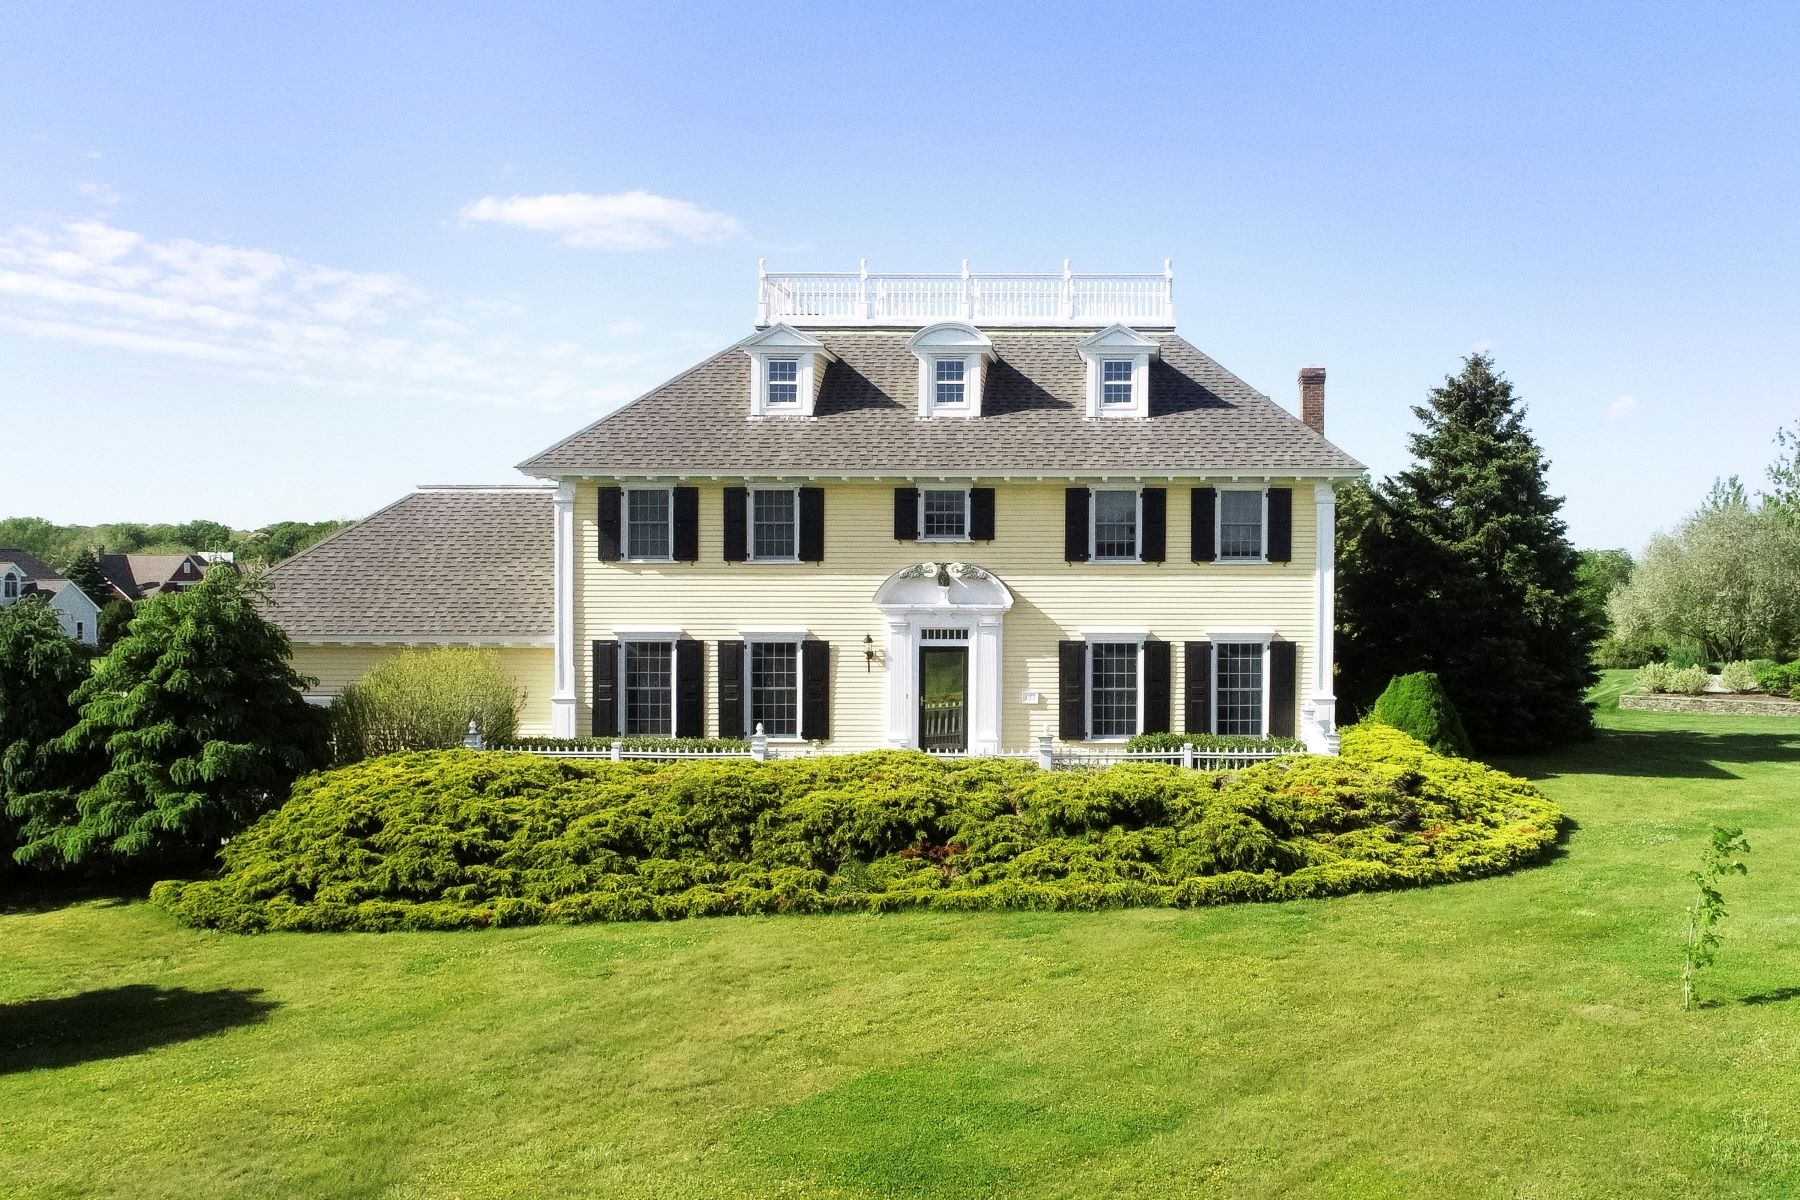 Single Family Homes for Sale at Stately Colonial 171 Cottontail Drive Portsmouth, Rhode Island 02871 United States